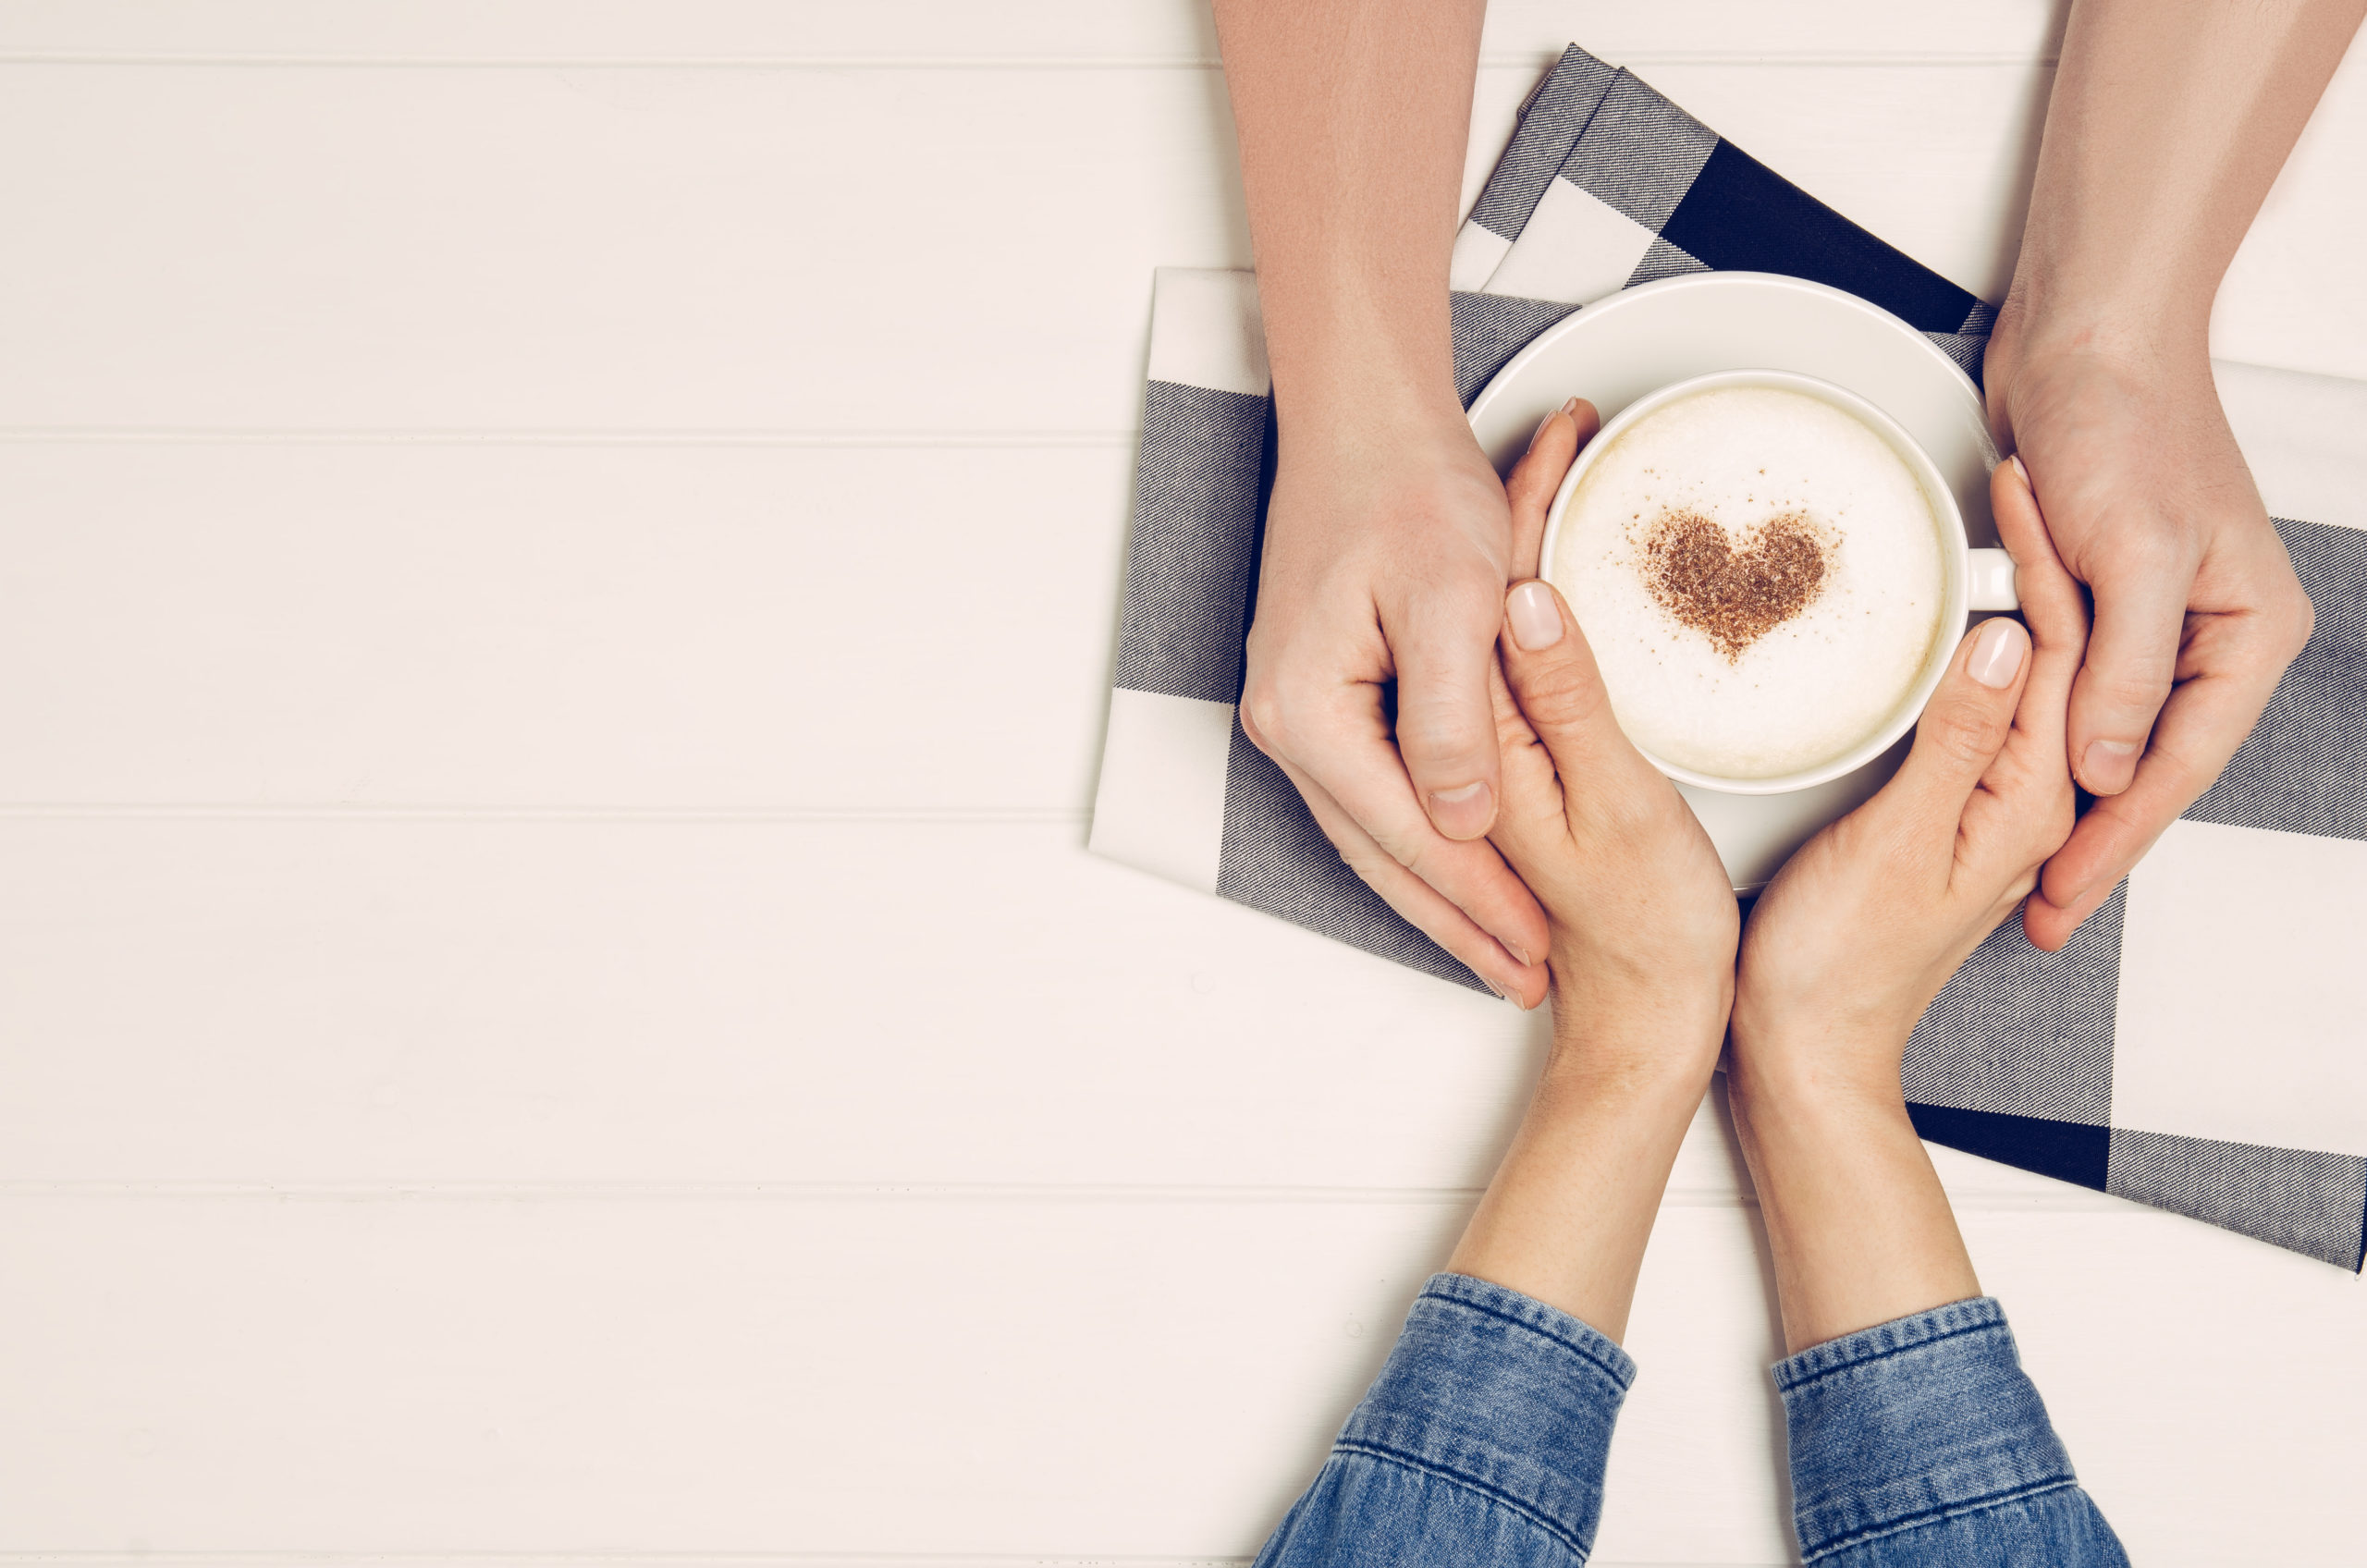 Couple,In,Love,Holding,Hands,With,Coffee,On,White,Wooden